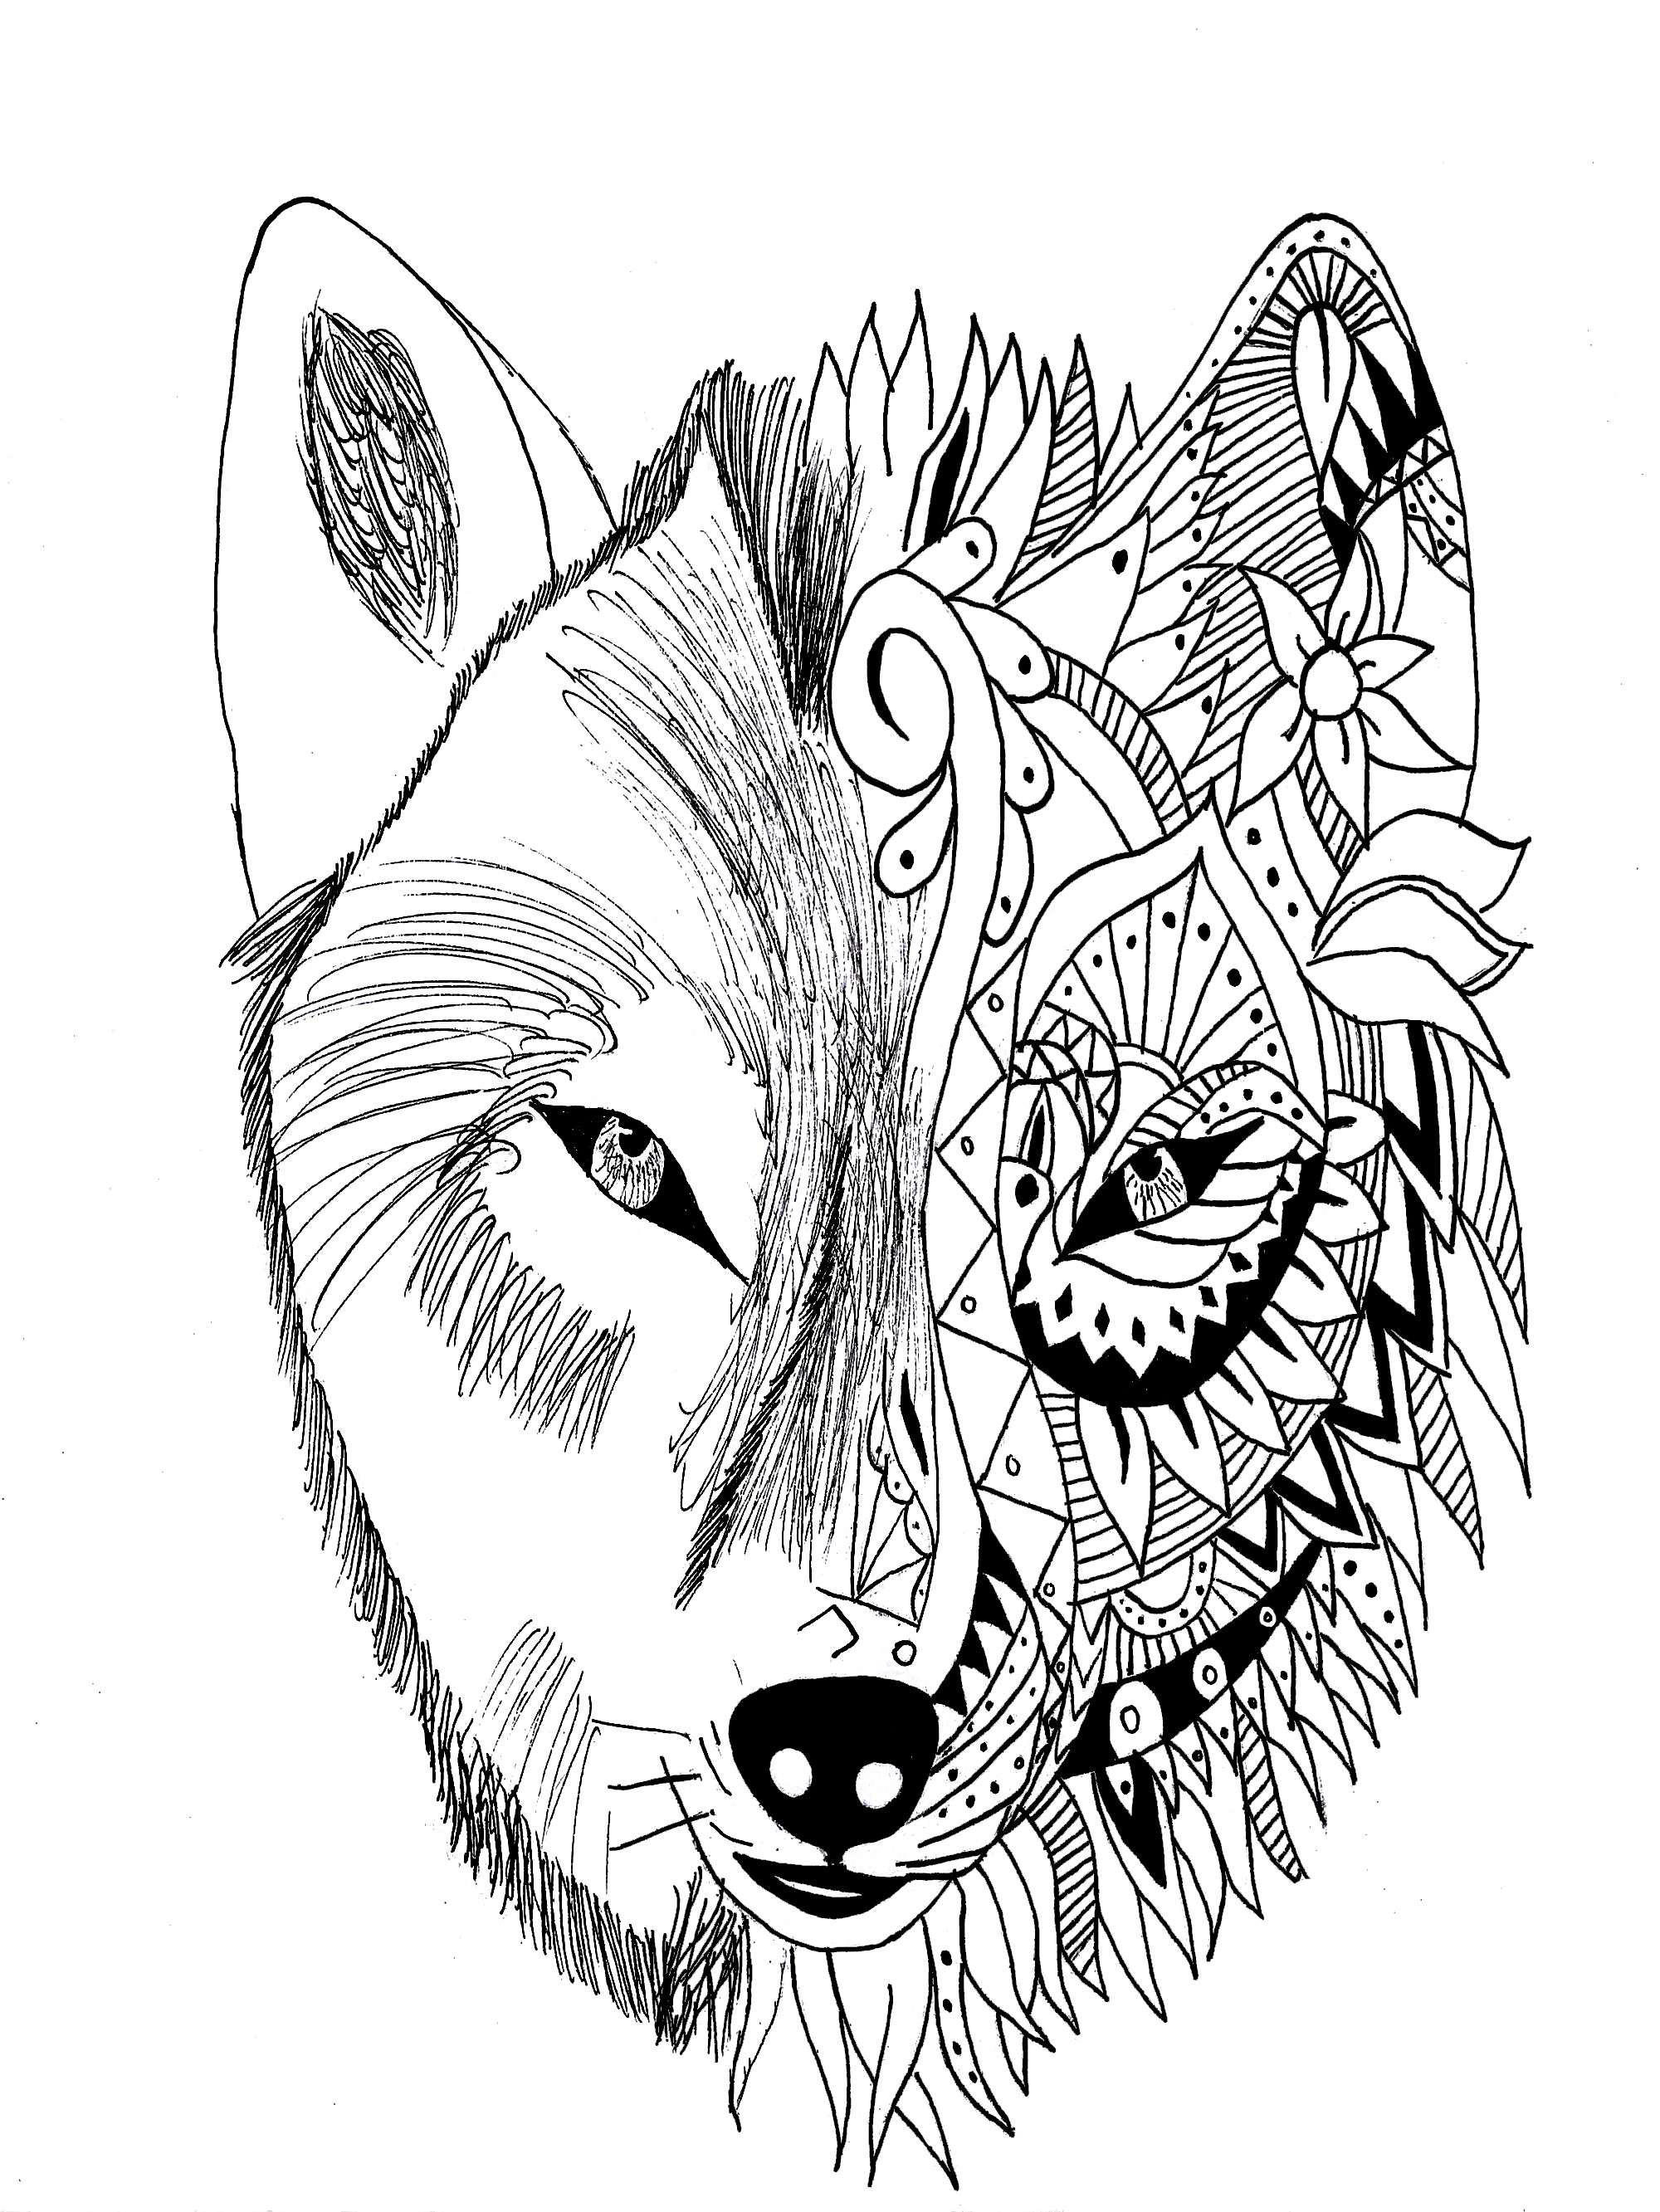 Tattoo wolf krissy | Tattoos - Coloring pages for adults | JustColor